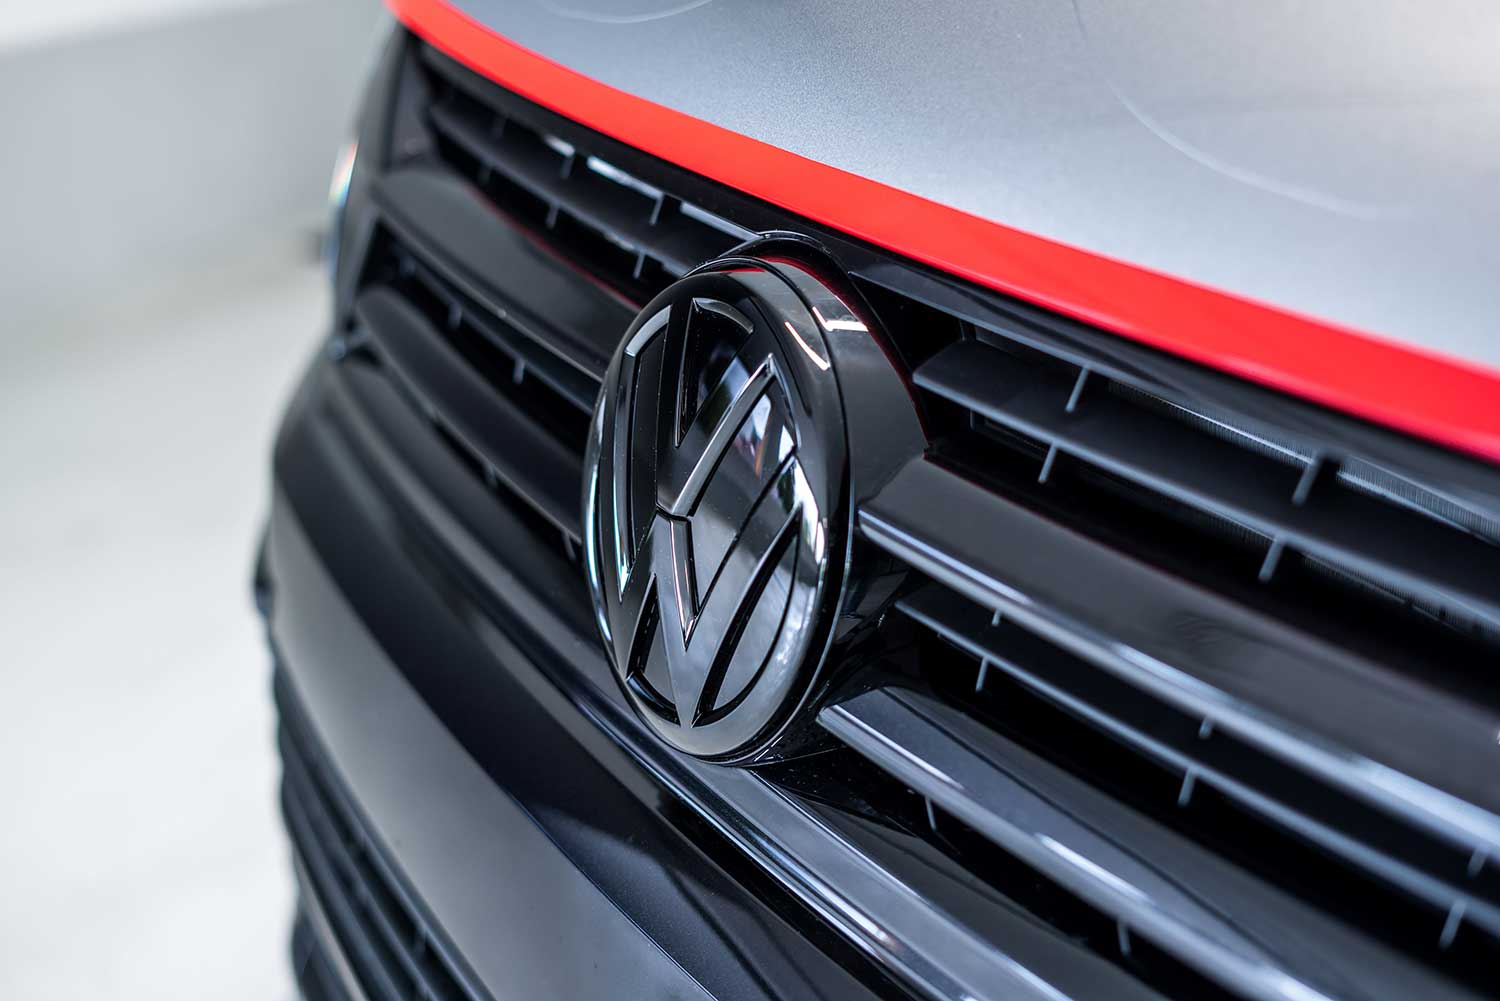 Volkswagen A-Team-bus van Abt grille close-up